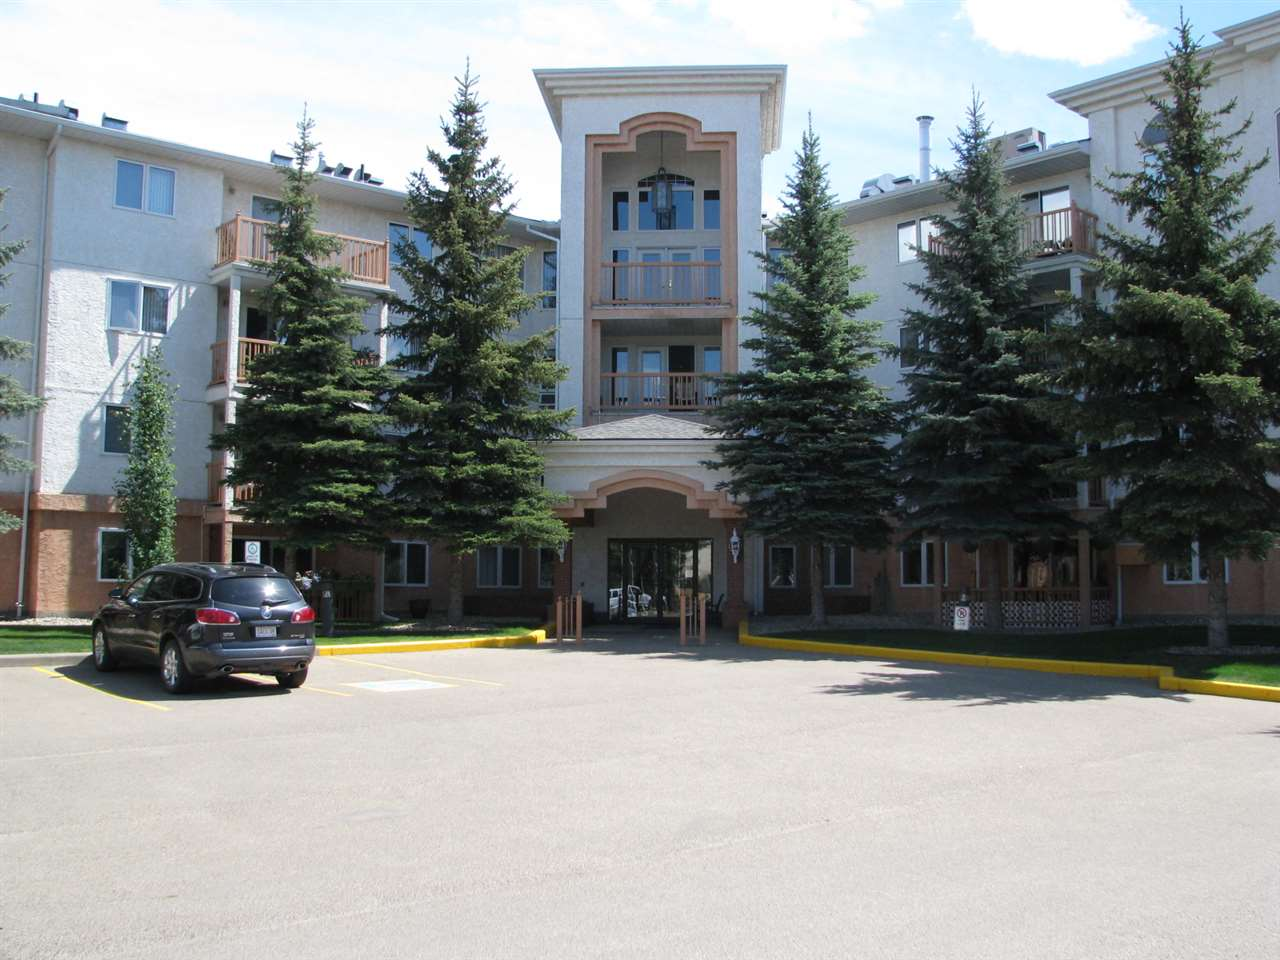 Main Photo: 202 10903 21 Avenue in Edmonton: Zone 16 Condo for sale : MLS(r) # E4067066